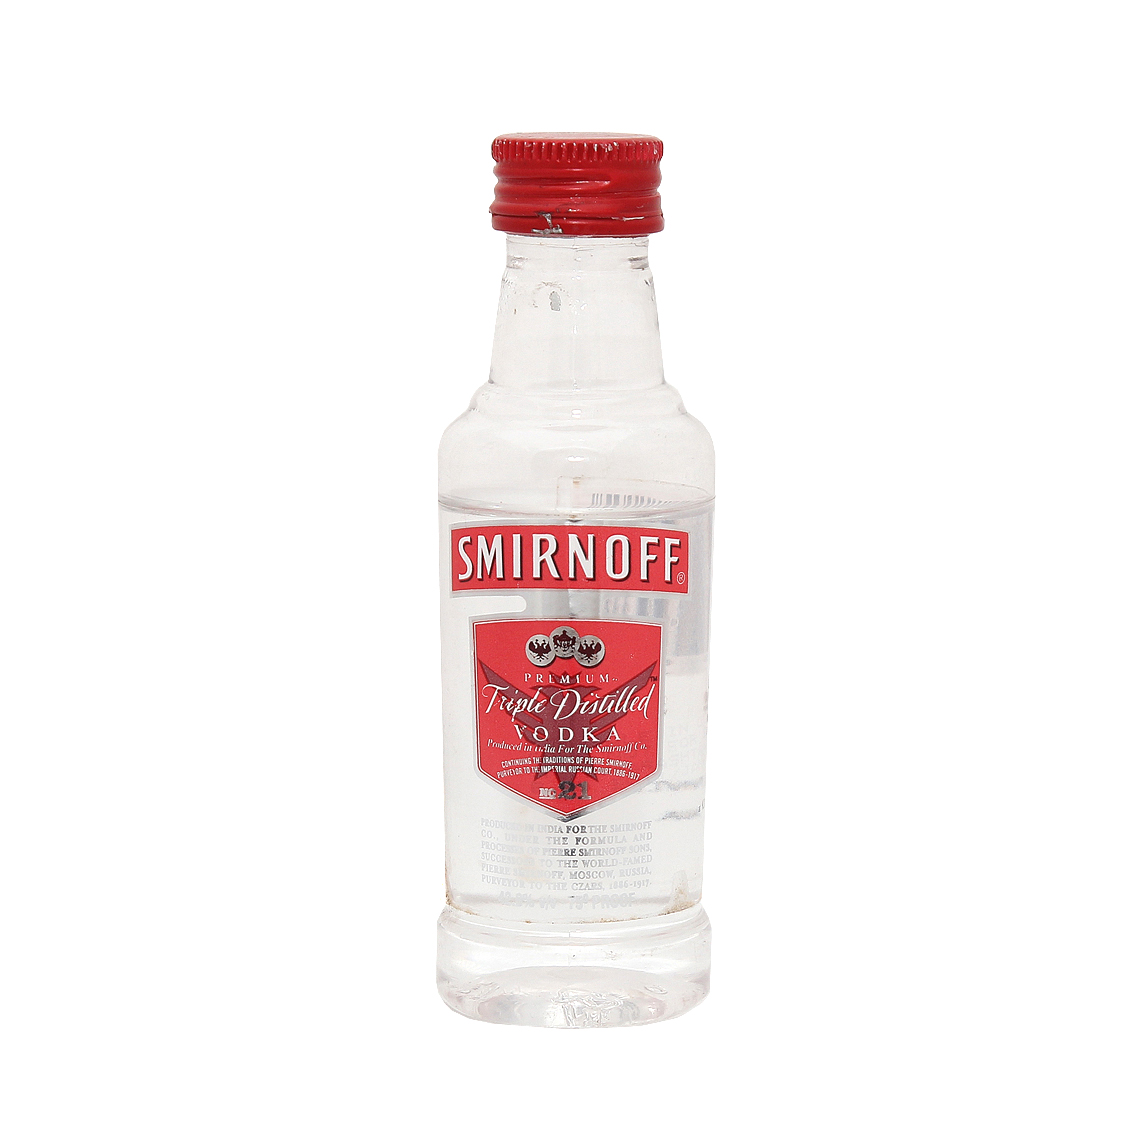 VODKA-SMIRNOFF-twist-PREMIUM